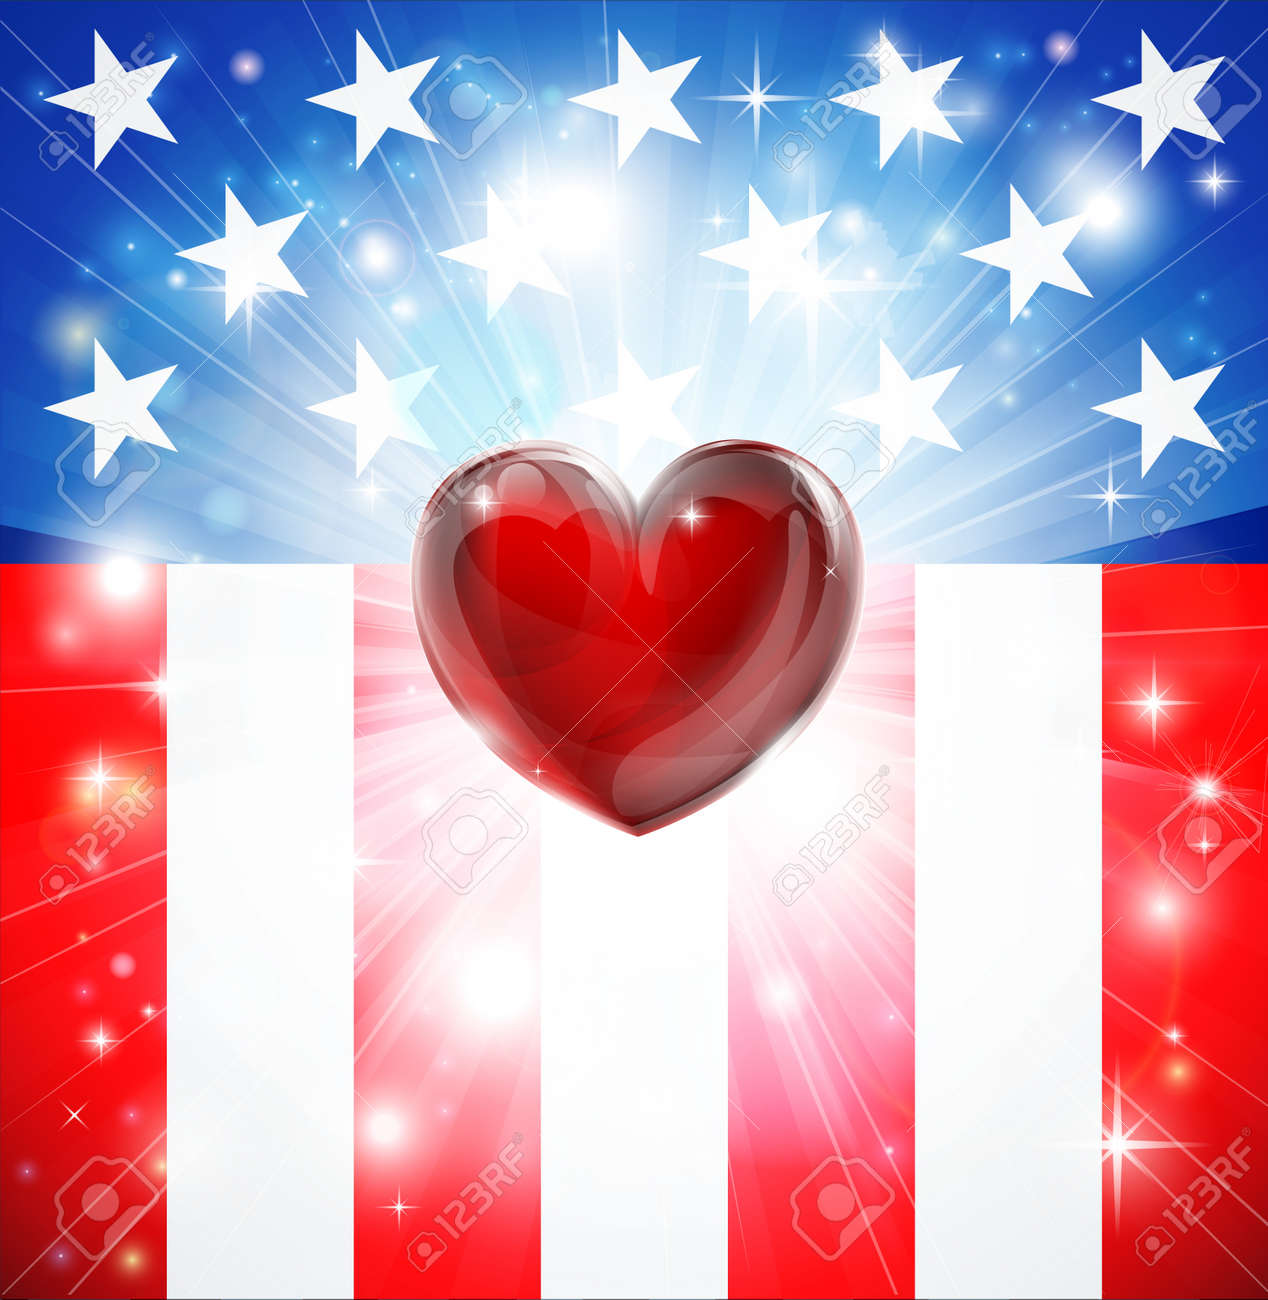 American flag patriotic background with heart, concept for love of country. Great for 4th of July or military themes. Stock Vector - 16477086